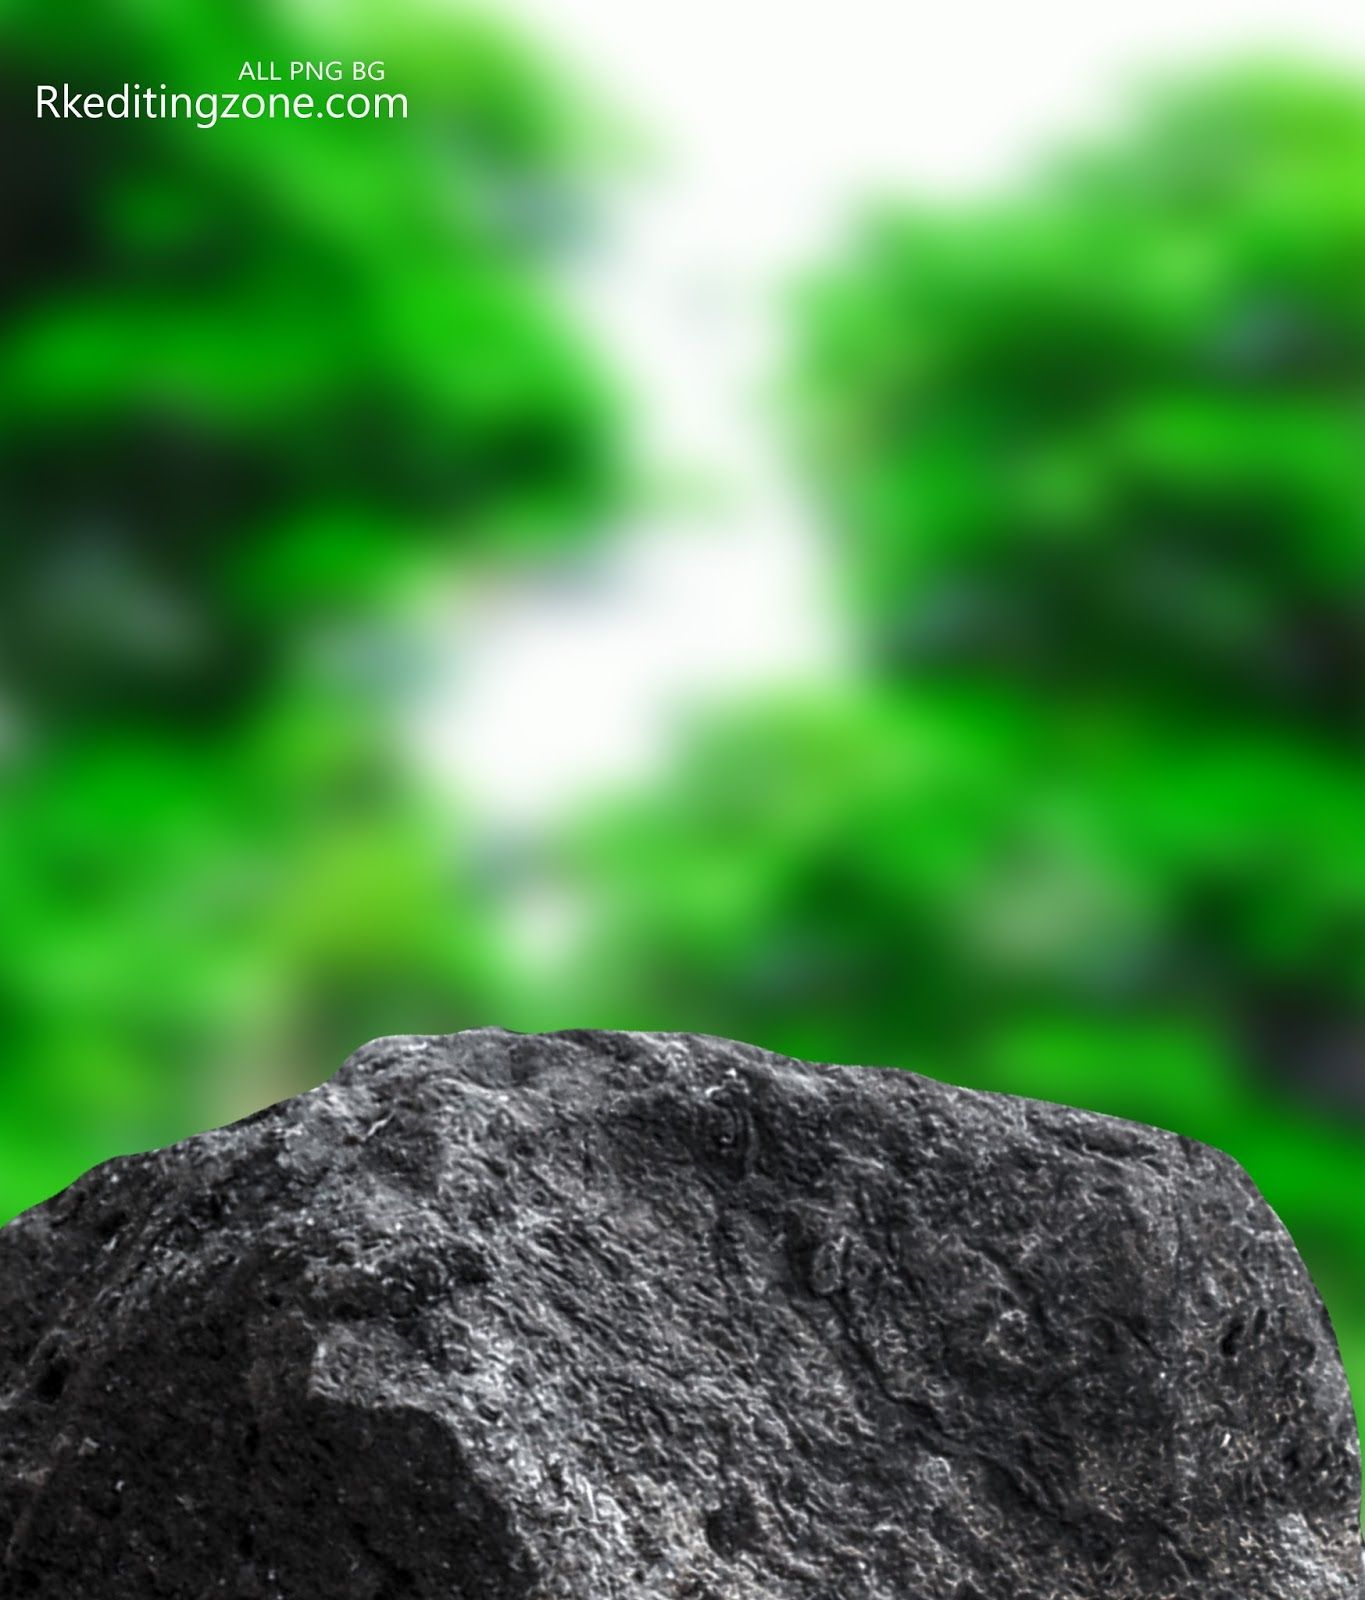 Background Images Png Hd (+).